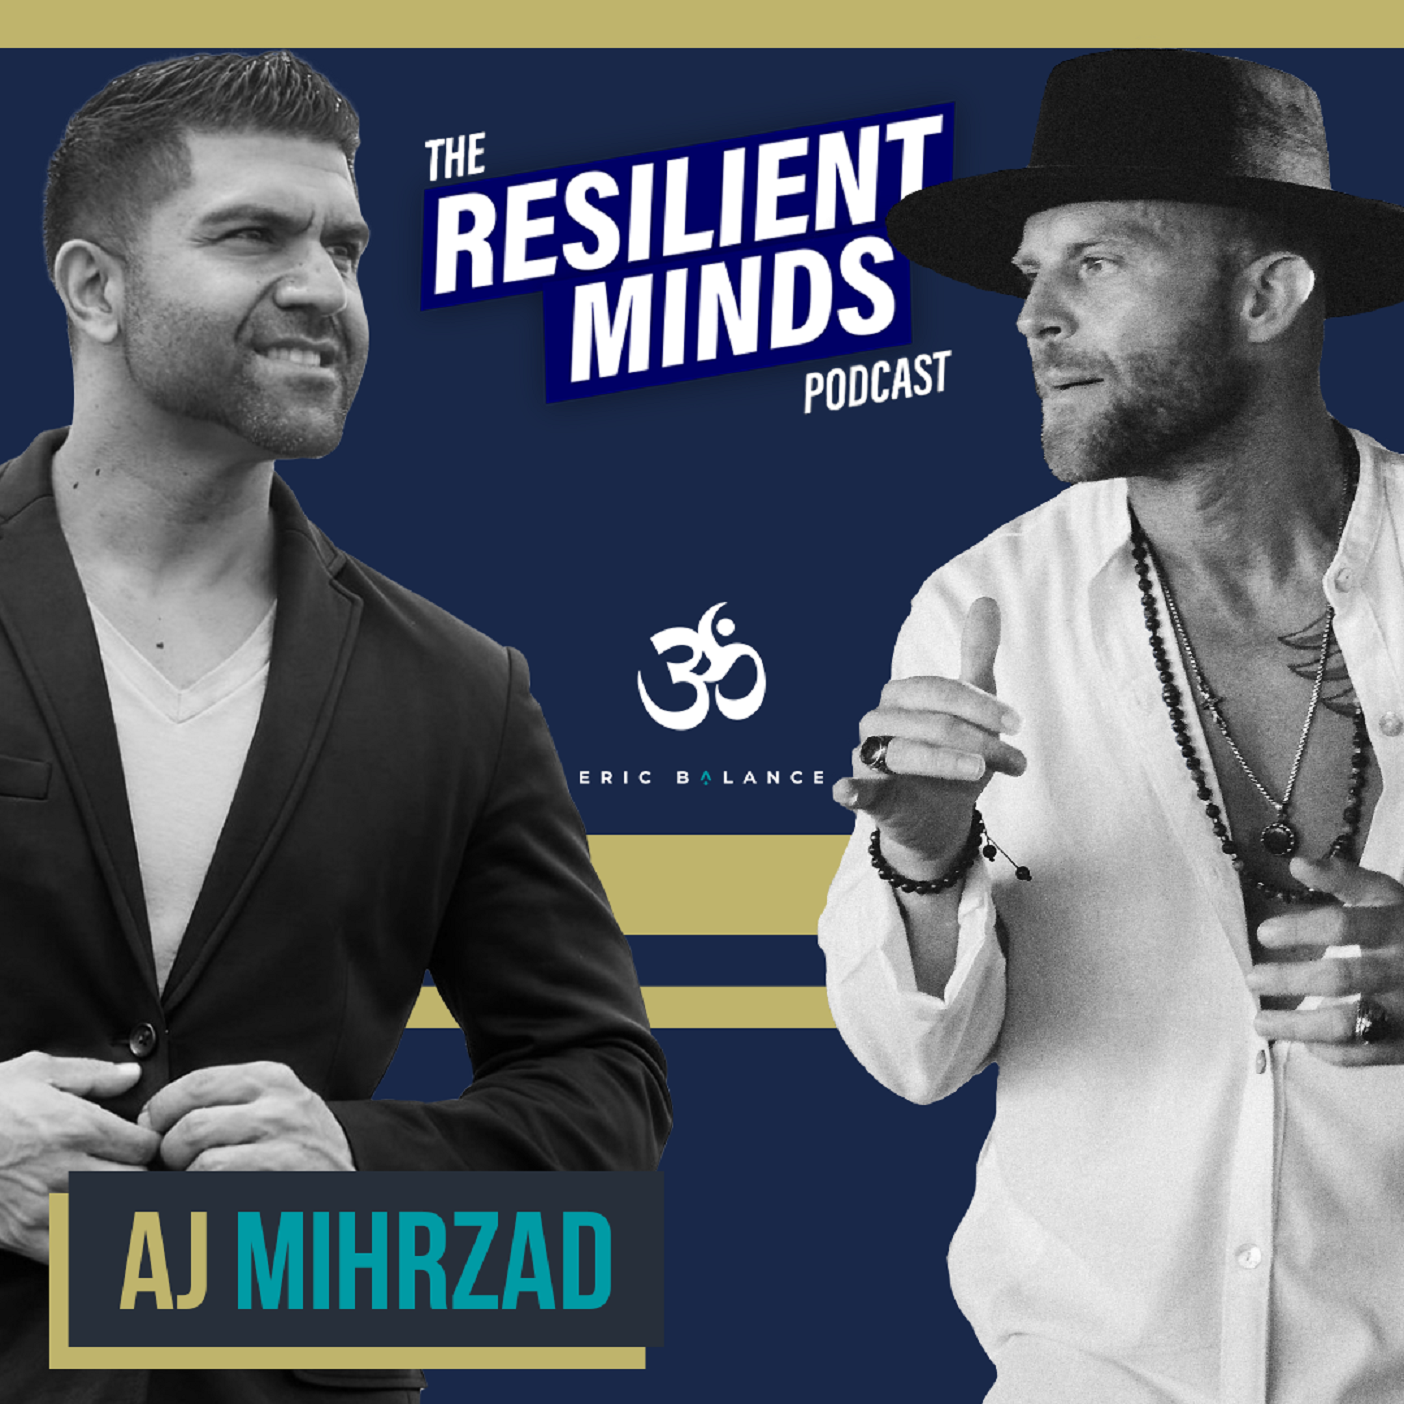 Episode 46 – How Your Pain Can Transform Into Your Greatest Success with AJ Mihrzad.